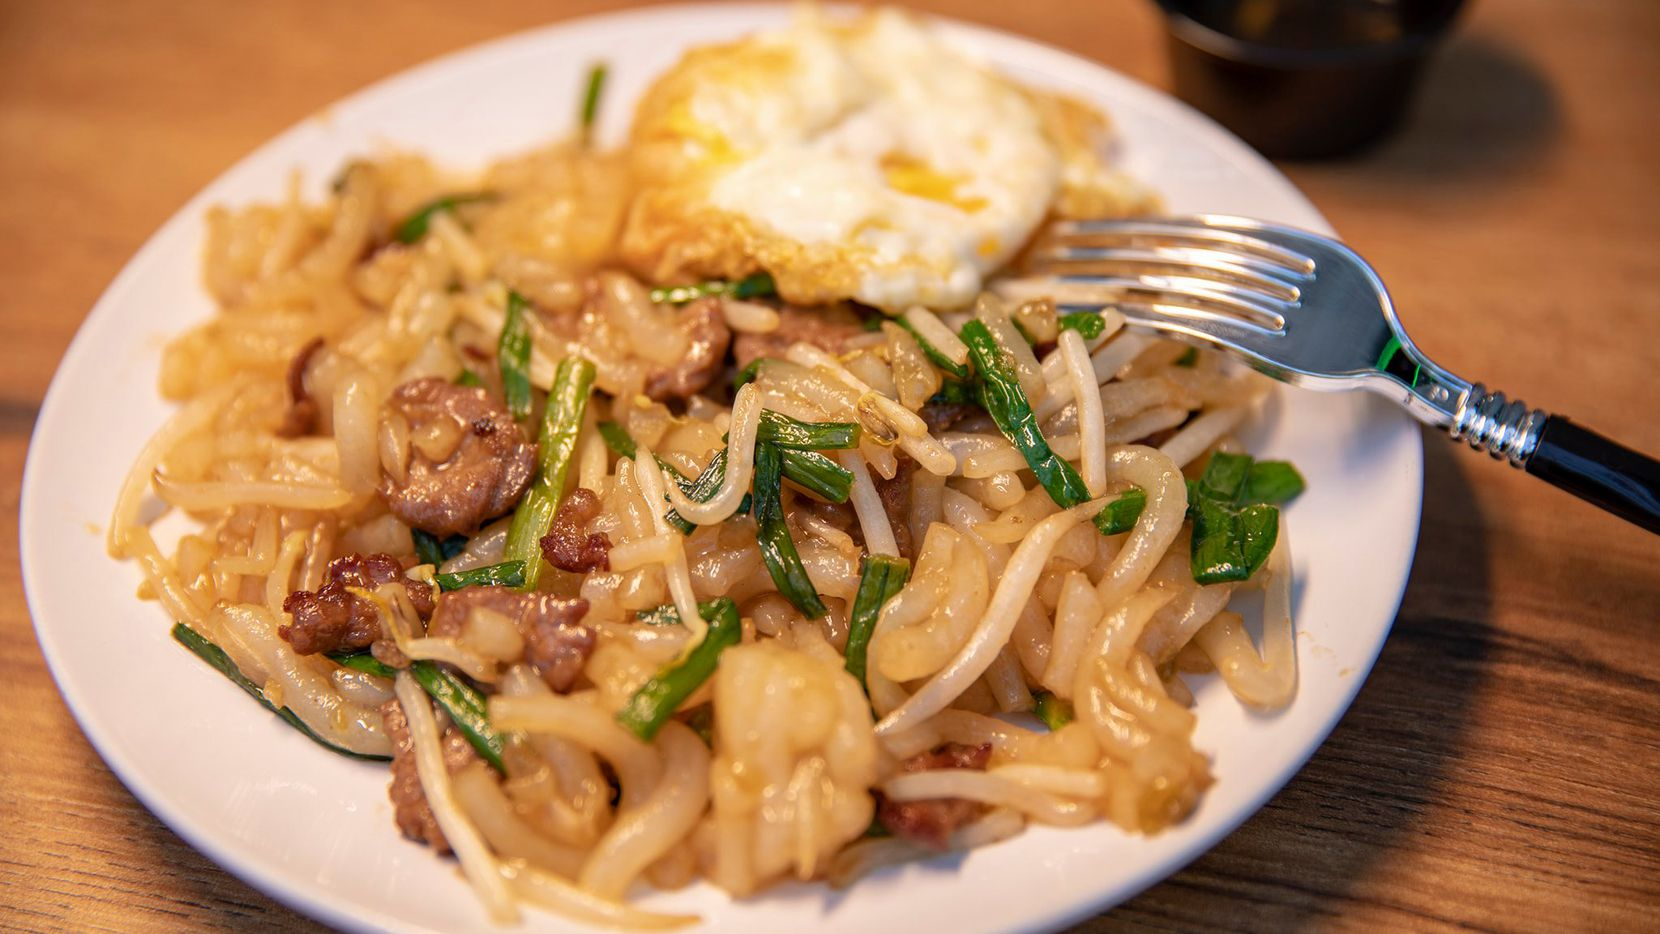 Lort cha is a popular Cambodian dish served at Aspara Thai and Cambodian restaurant.